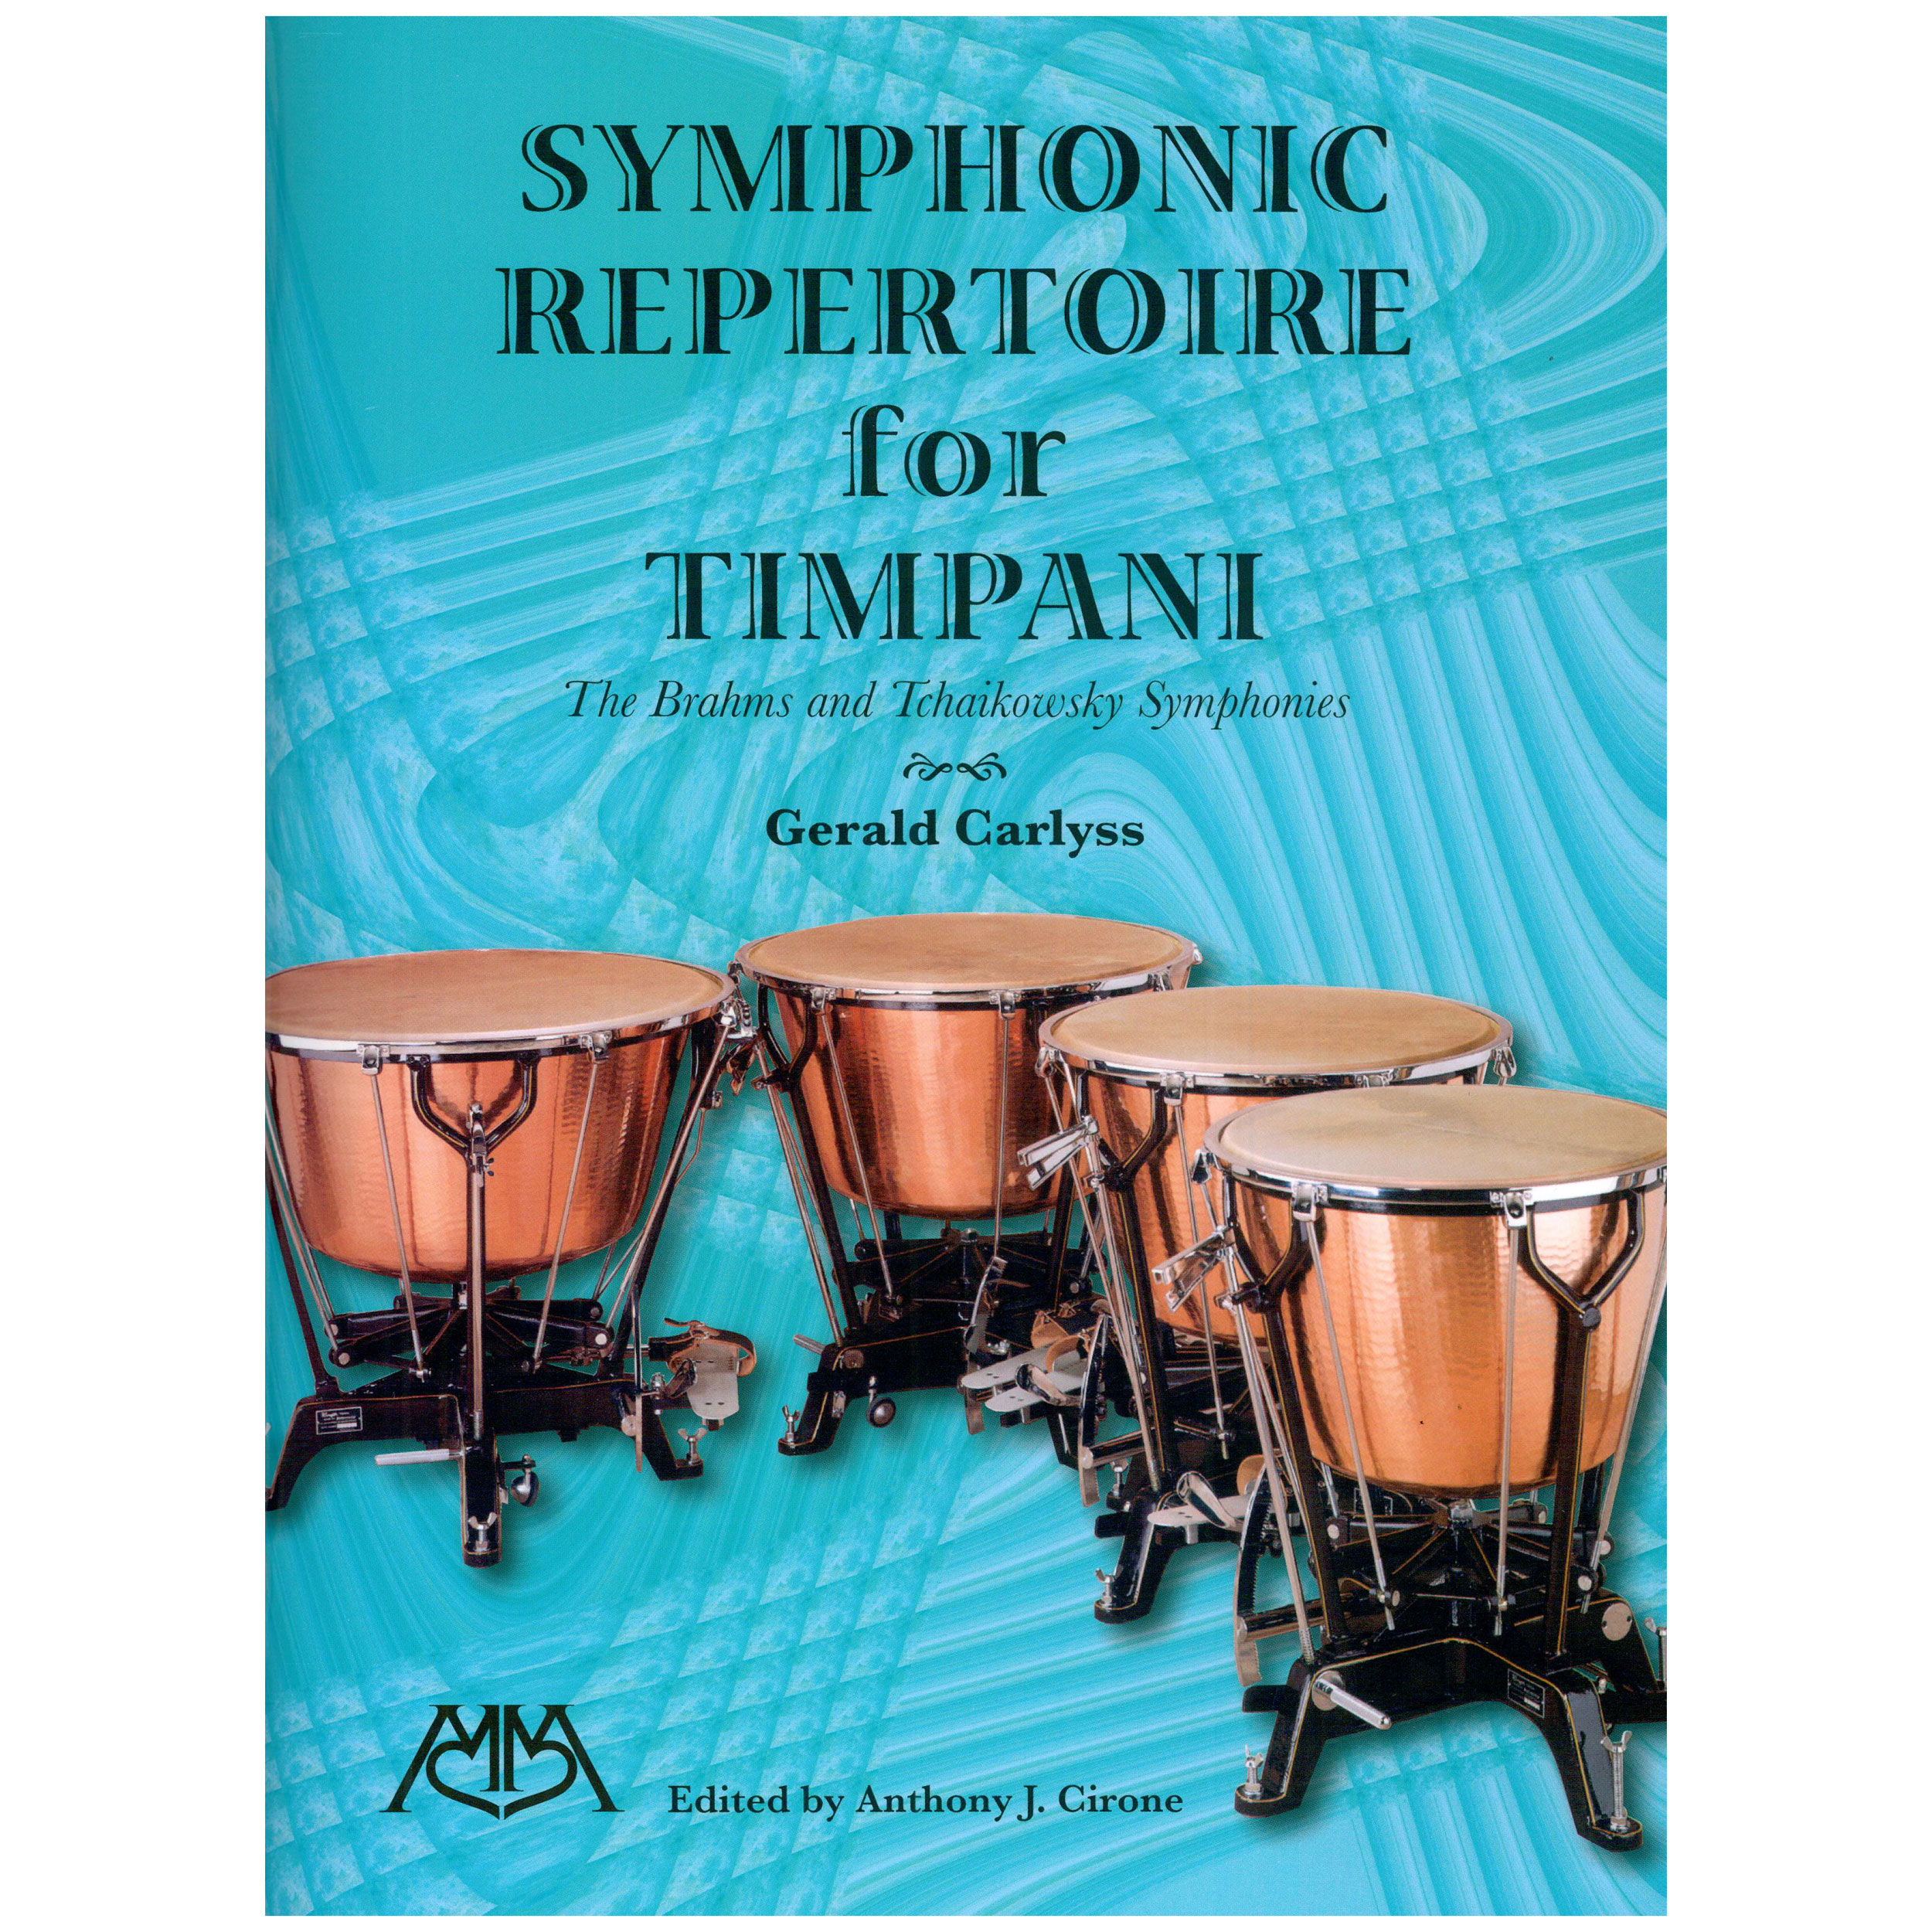 Symphonic Repertoire for Timpani: The Brahms and Tchaikowsky Symphonies by Gerald Carlyss